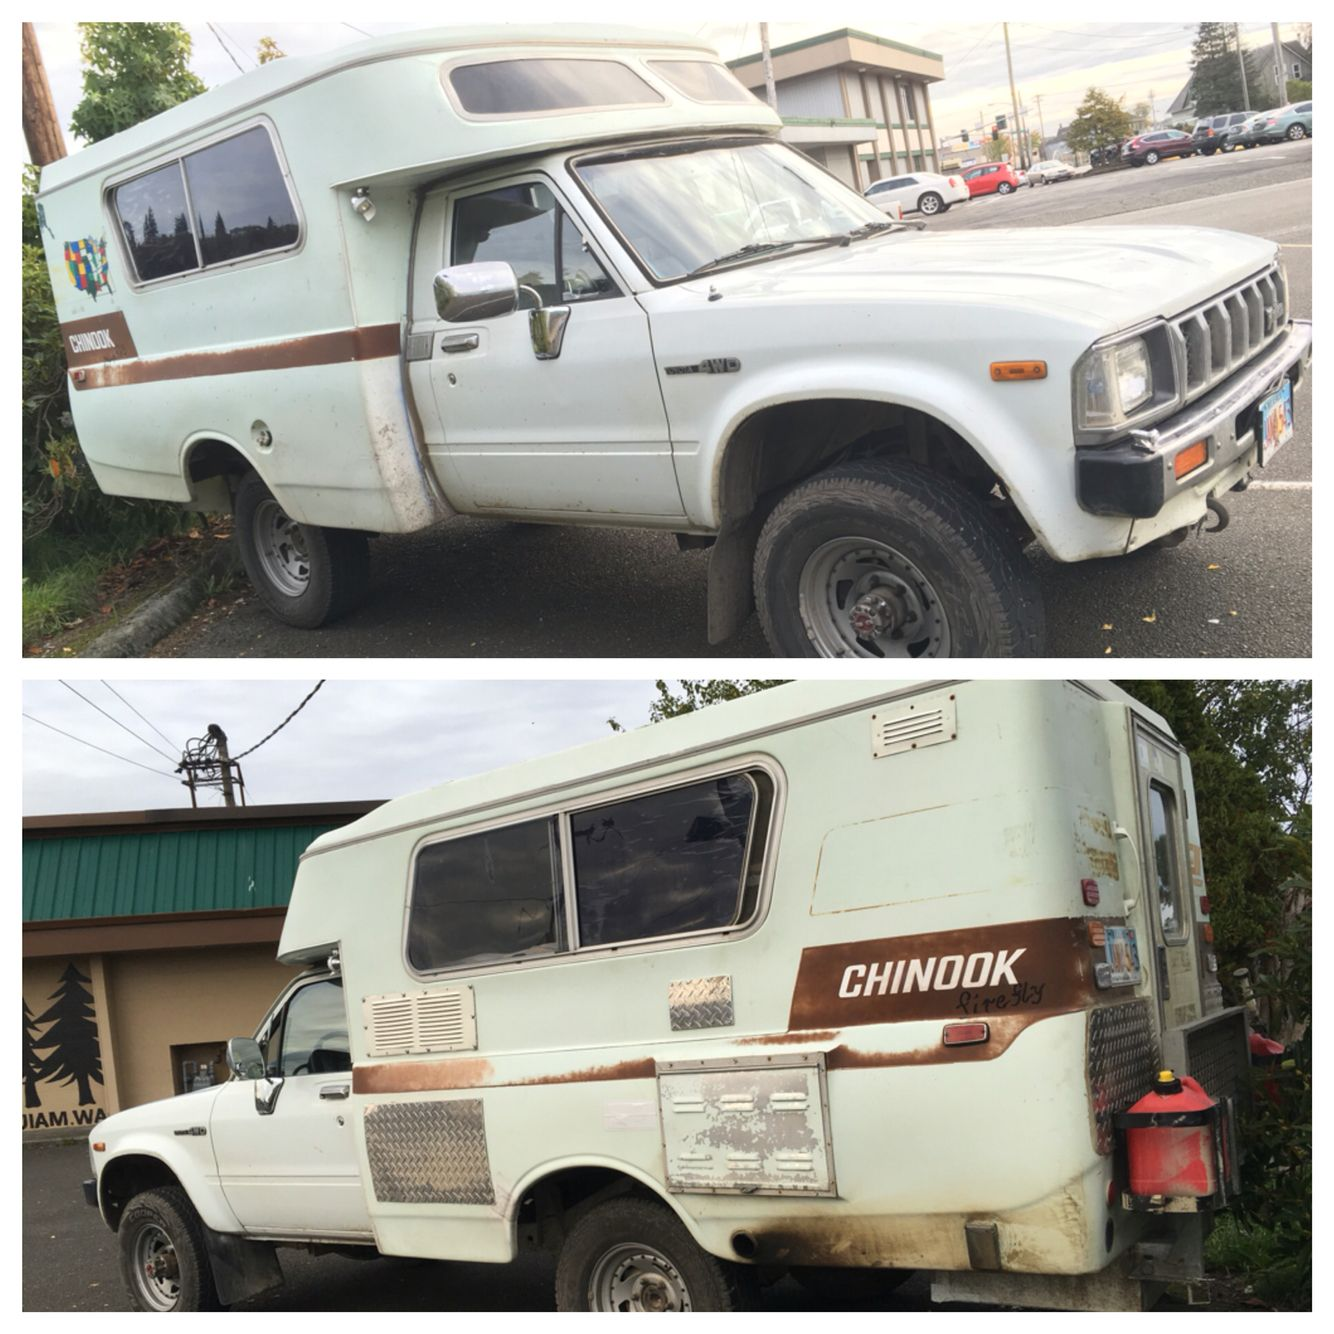 Used Toyota Campers For Sale: Toyota Chinook - 2wd & 4wd